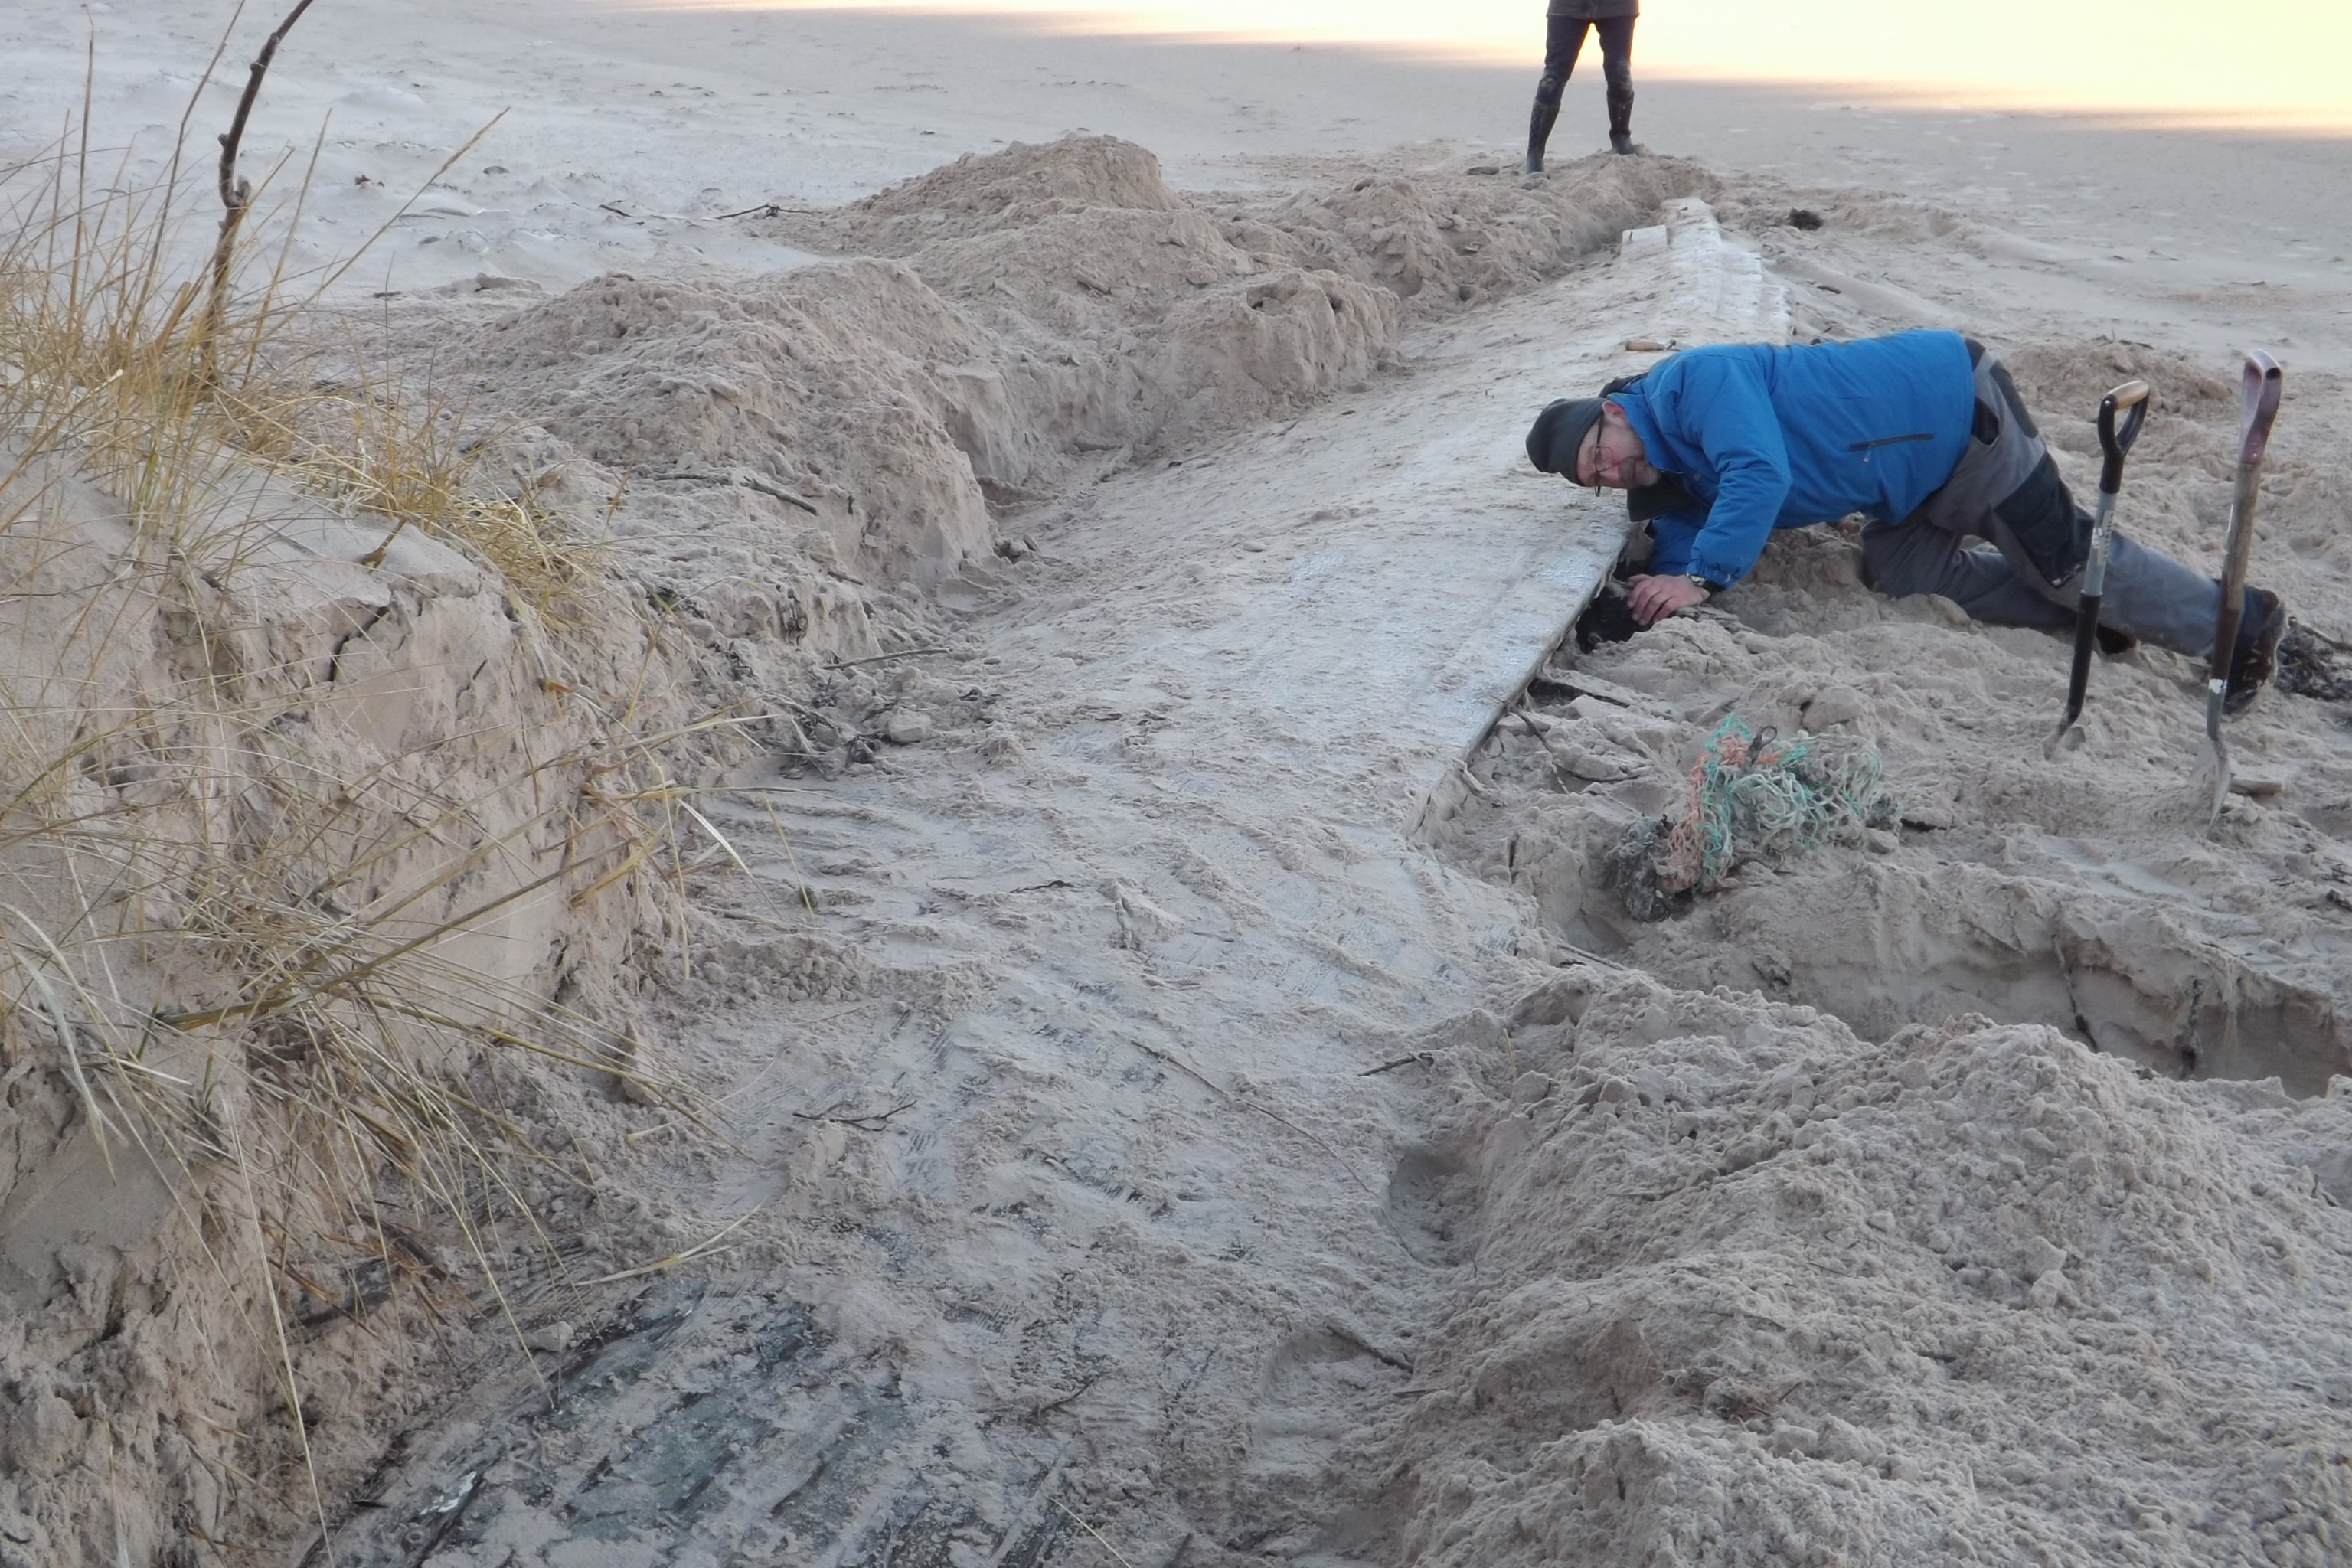 Members of Nairn Sailing Club turned out to help dig the mysterious vessel out from beneath the sand dune.